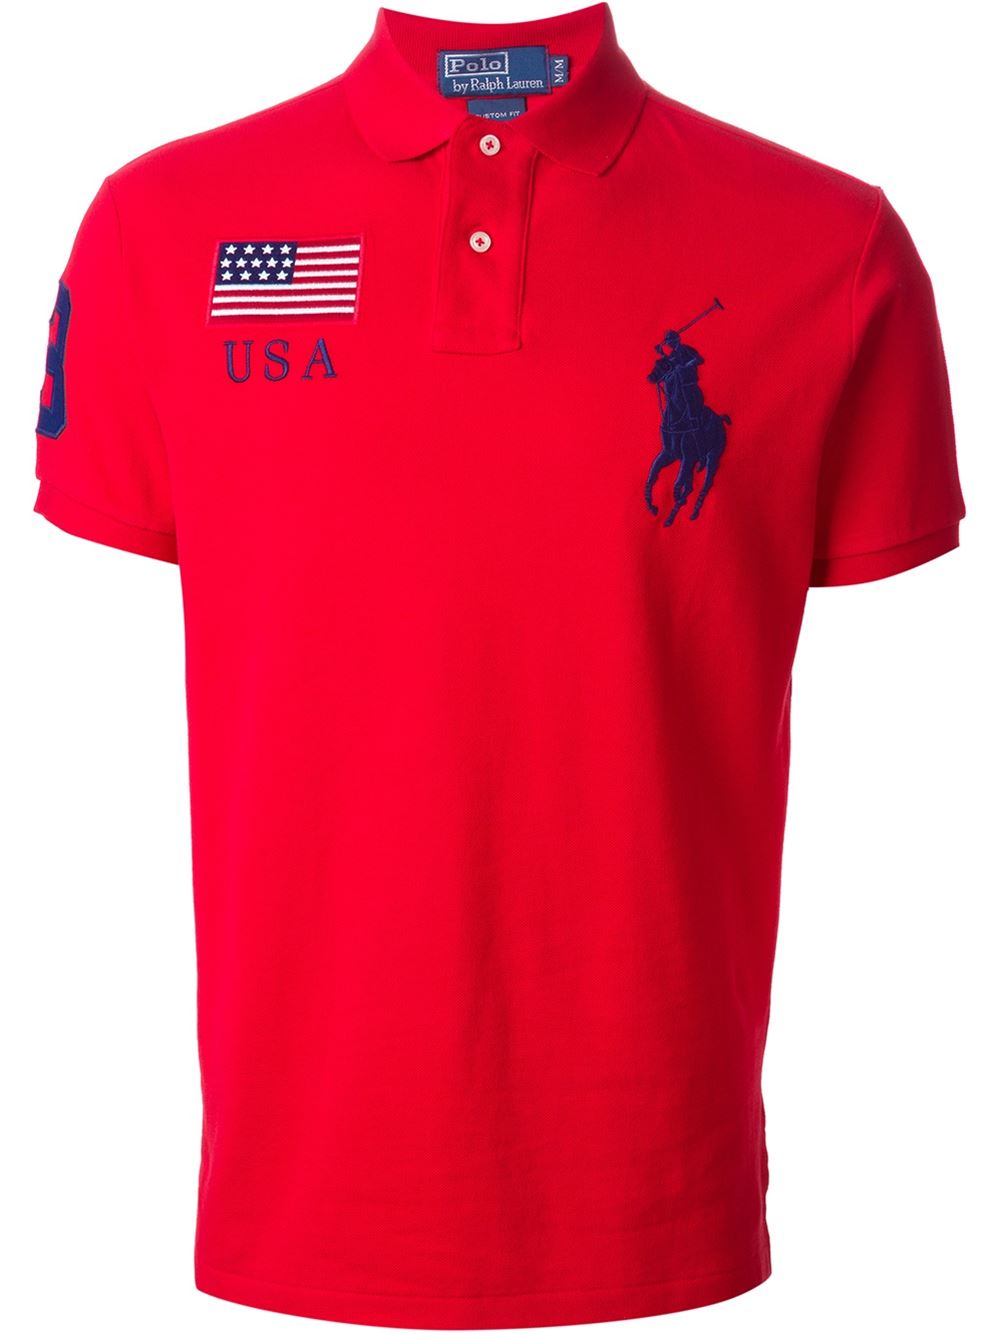 Design Polos Online Customize with Embroidery, Print, Sublimation or Laser Etching. No Mins. Create custom polo shirts for your company, team or group using your logo or hundreds of free design templates. We offer a variety of decoration options to meet every need.